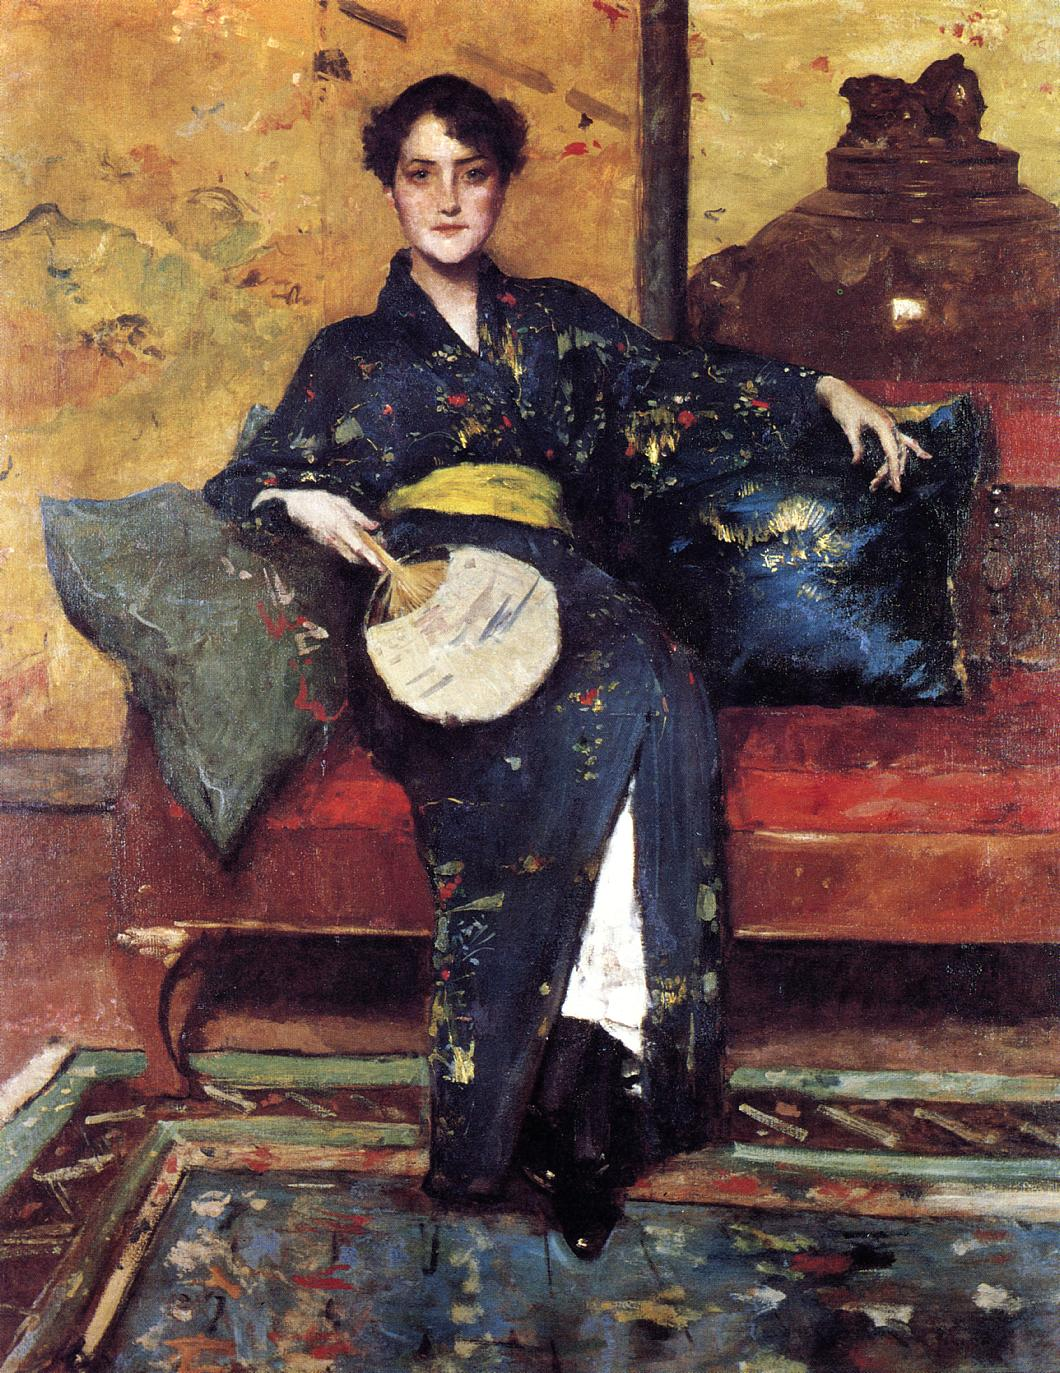 The Blue Kimono by William Merritt Chase, 1898